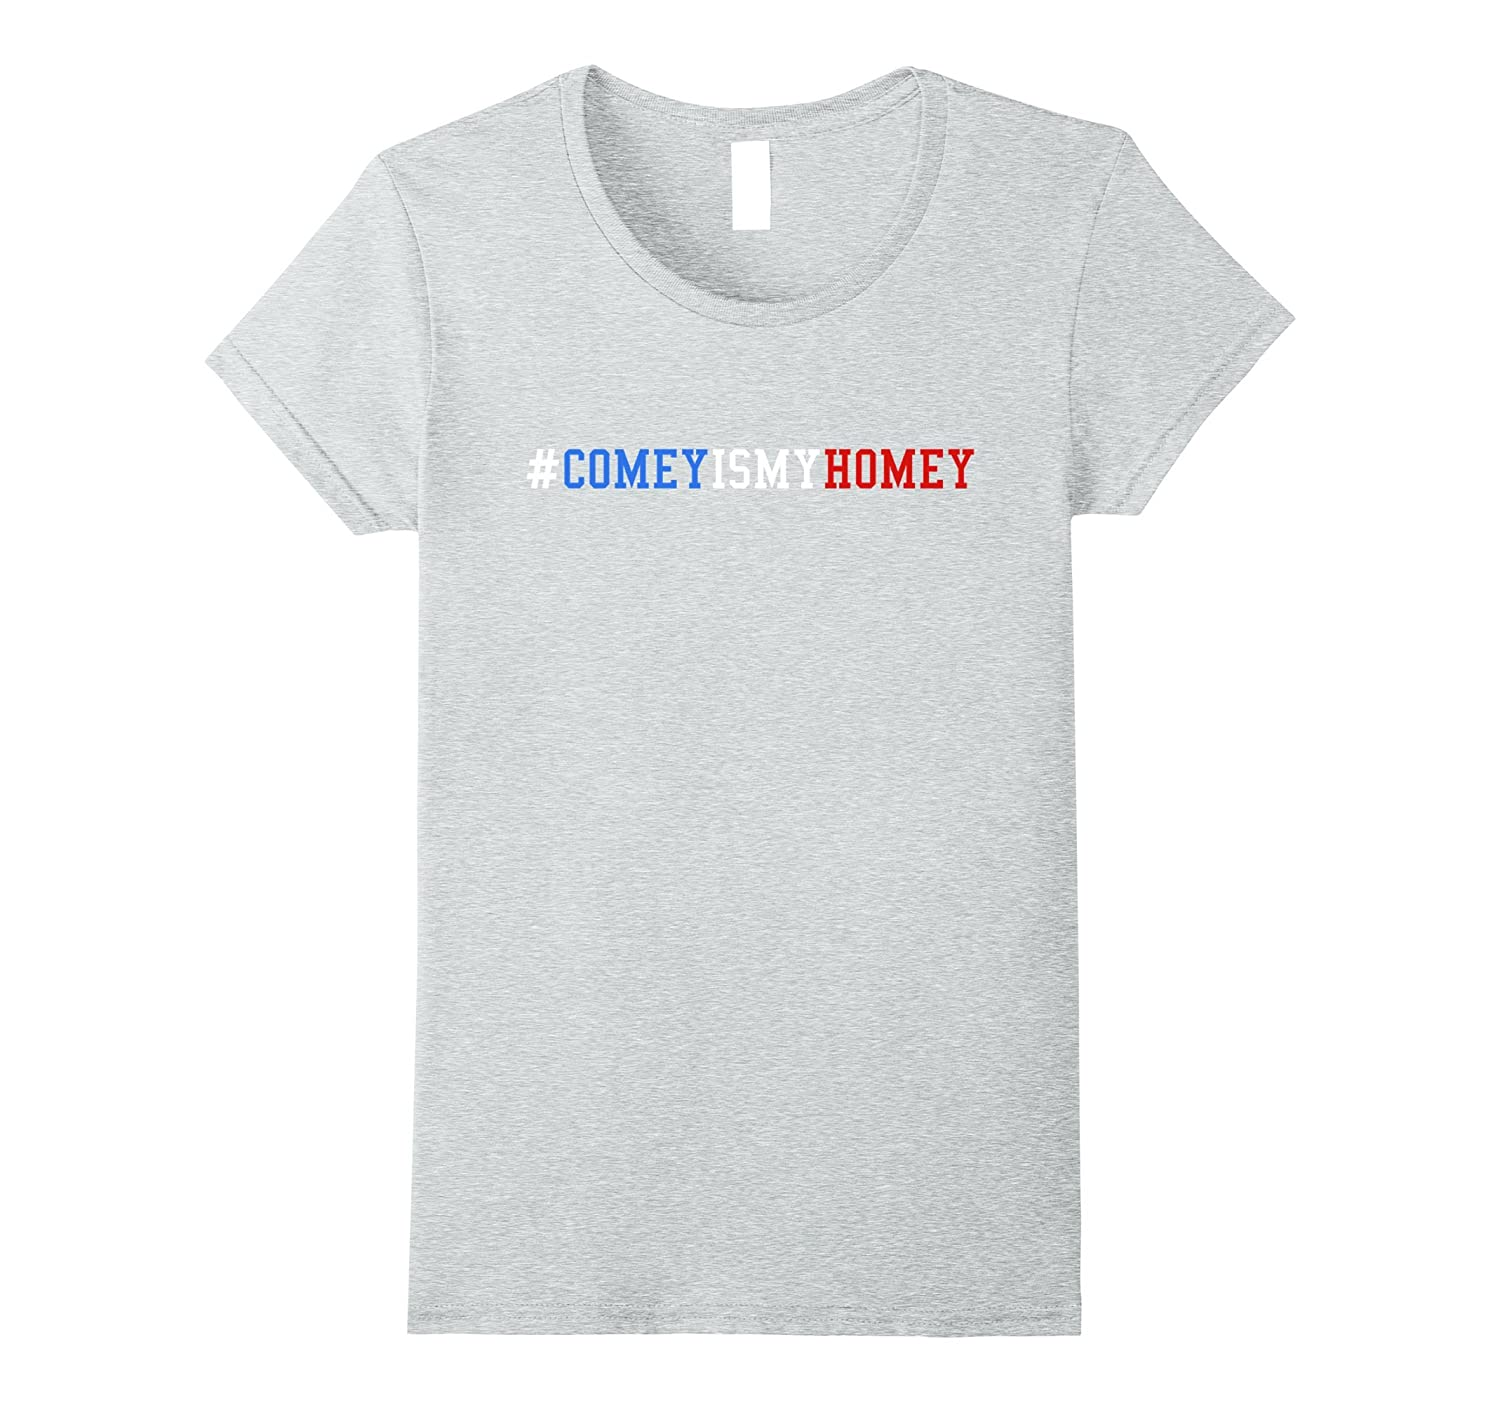 #ComeyIsMyHomey – Comey Is My Homey T-Shirt